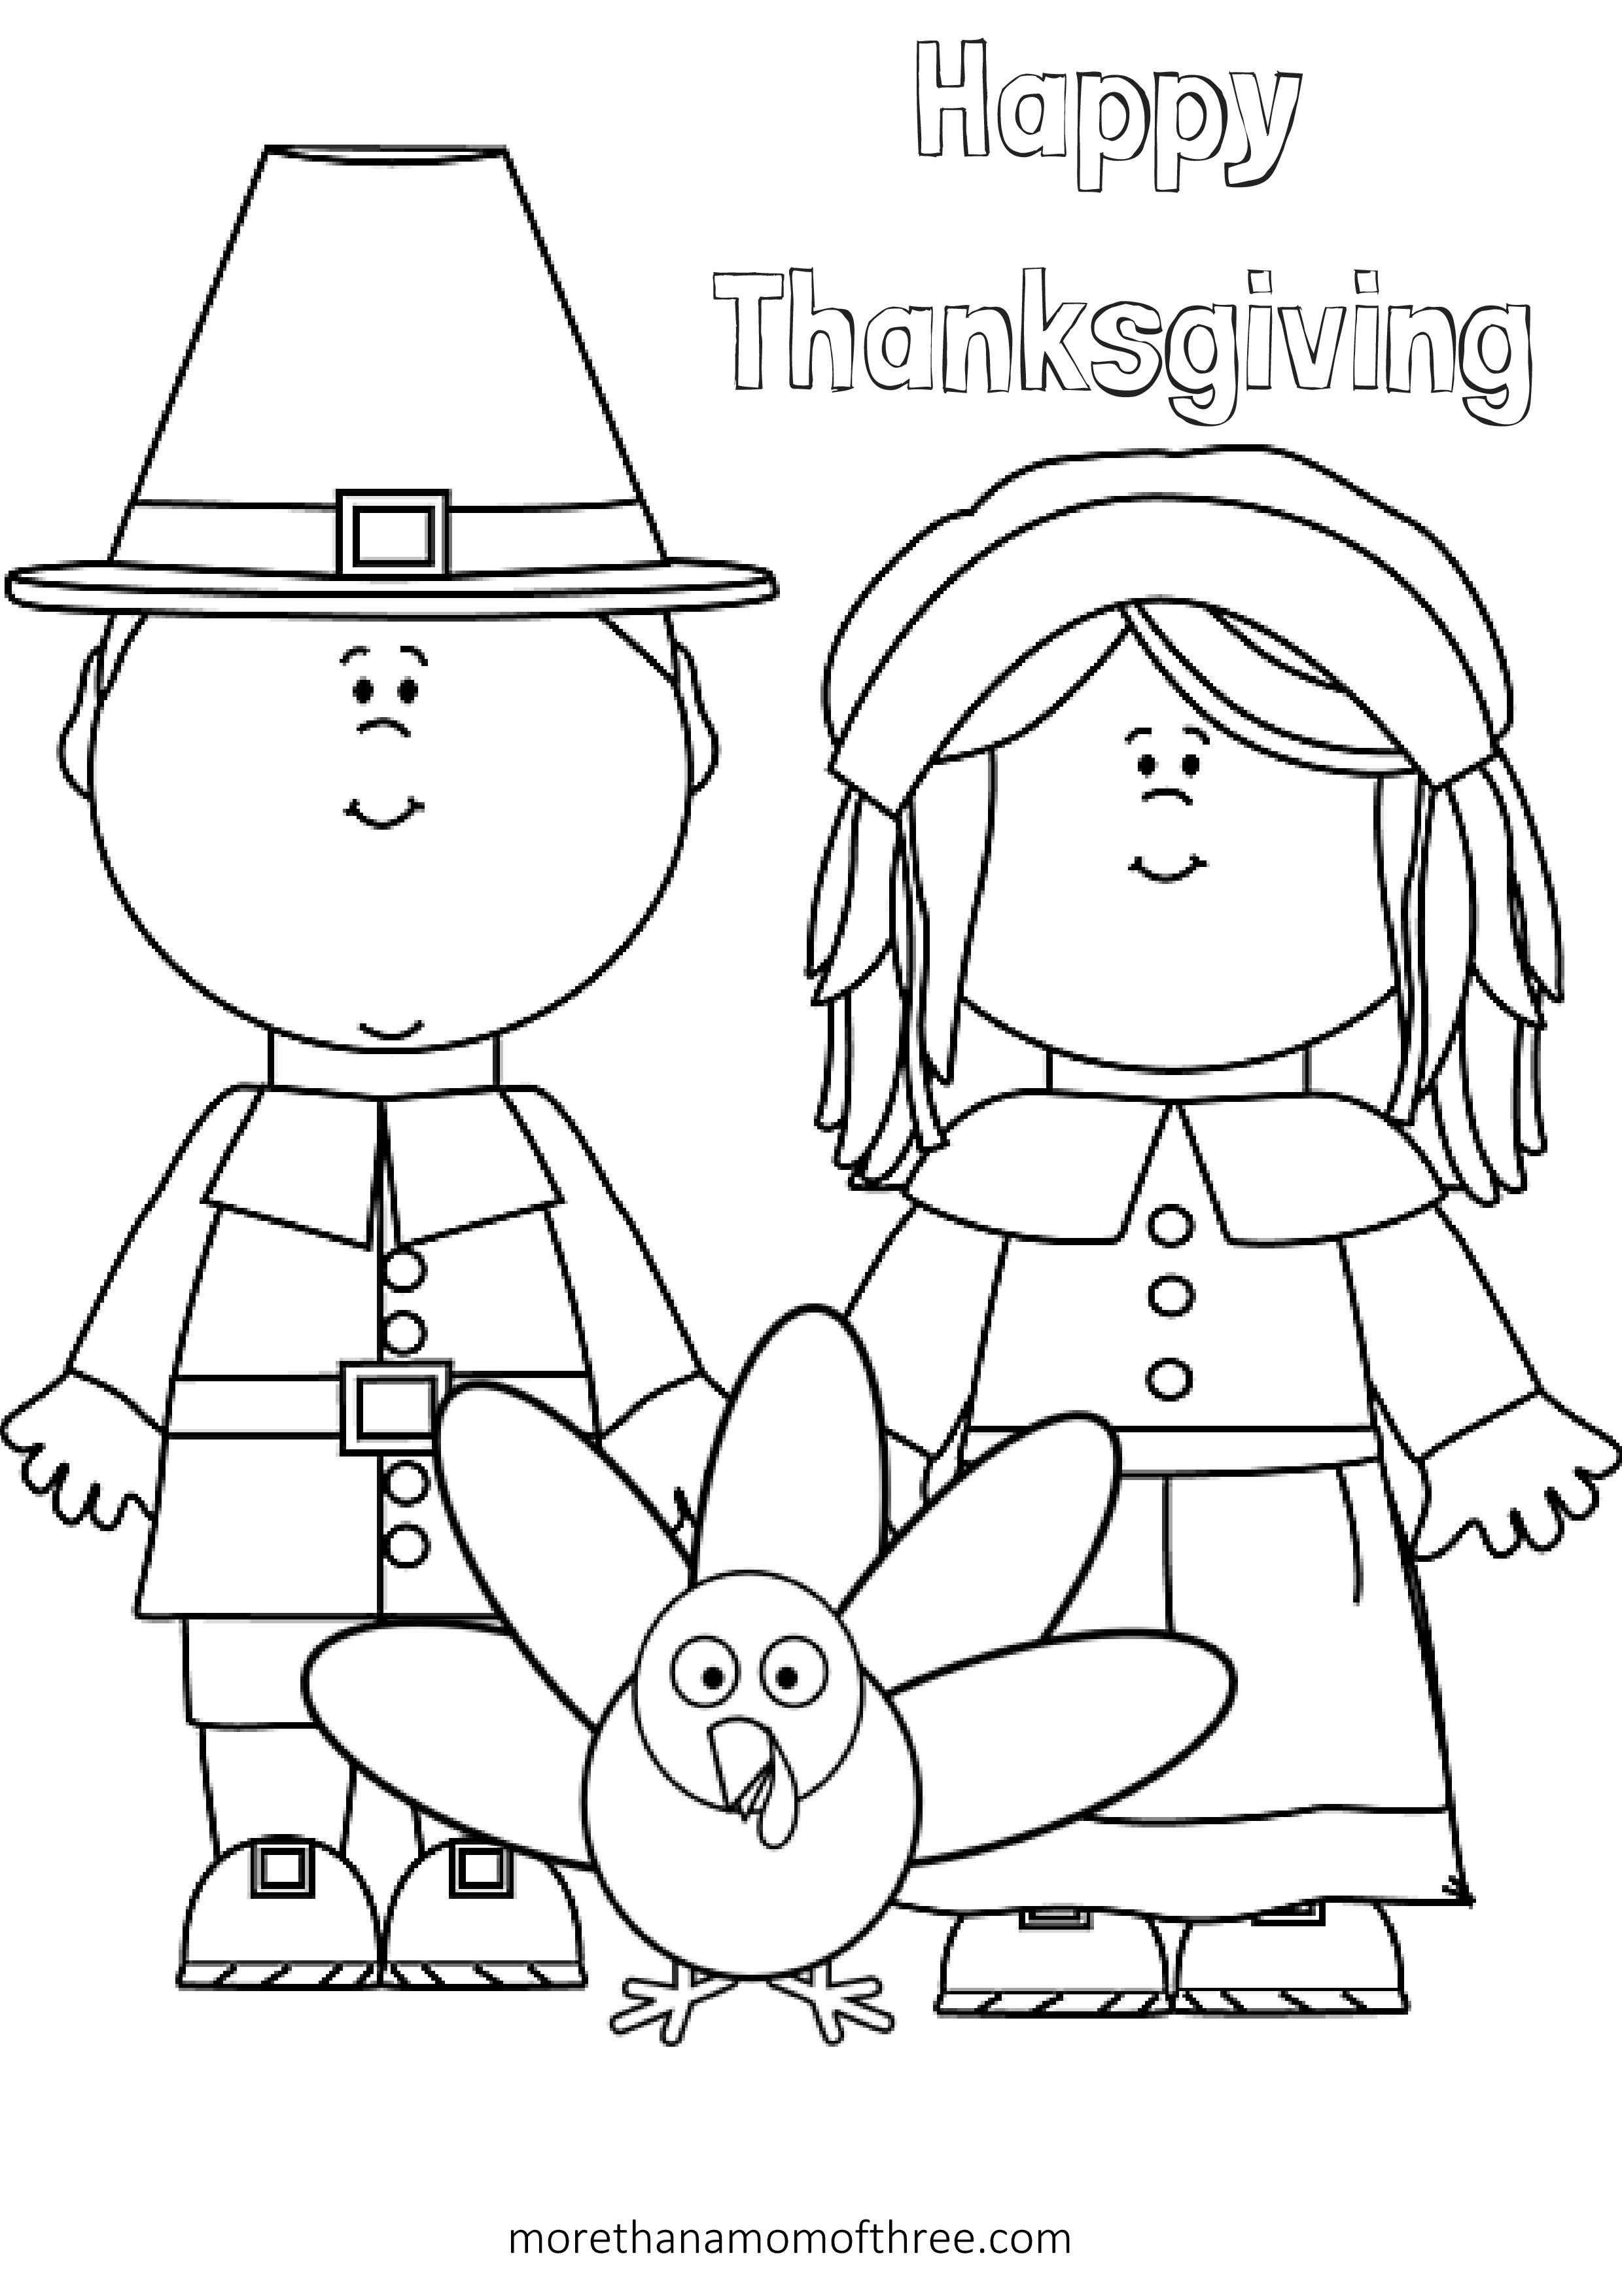 2479x3509 Free Thanksgiving Coloring Pages Printables For Kids Happy